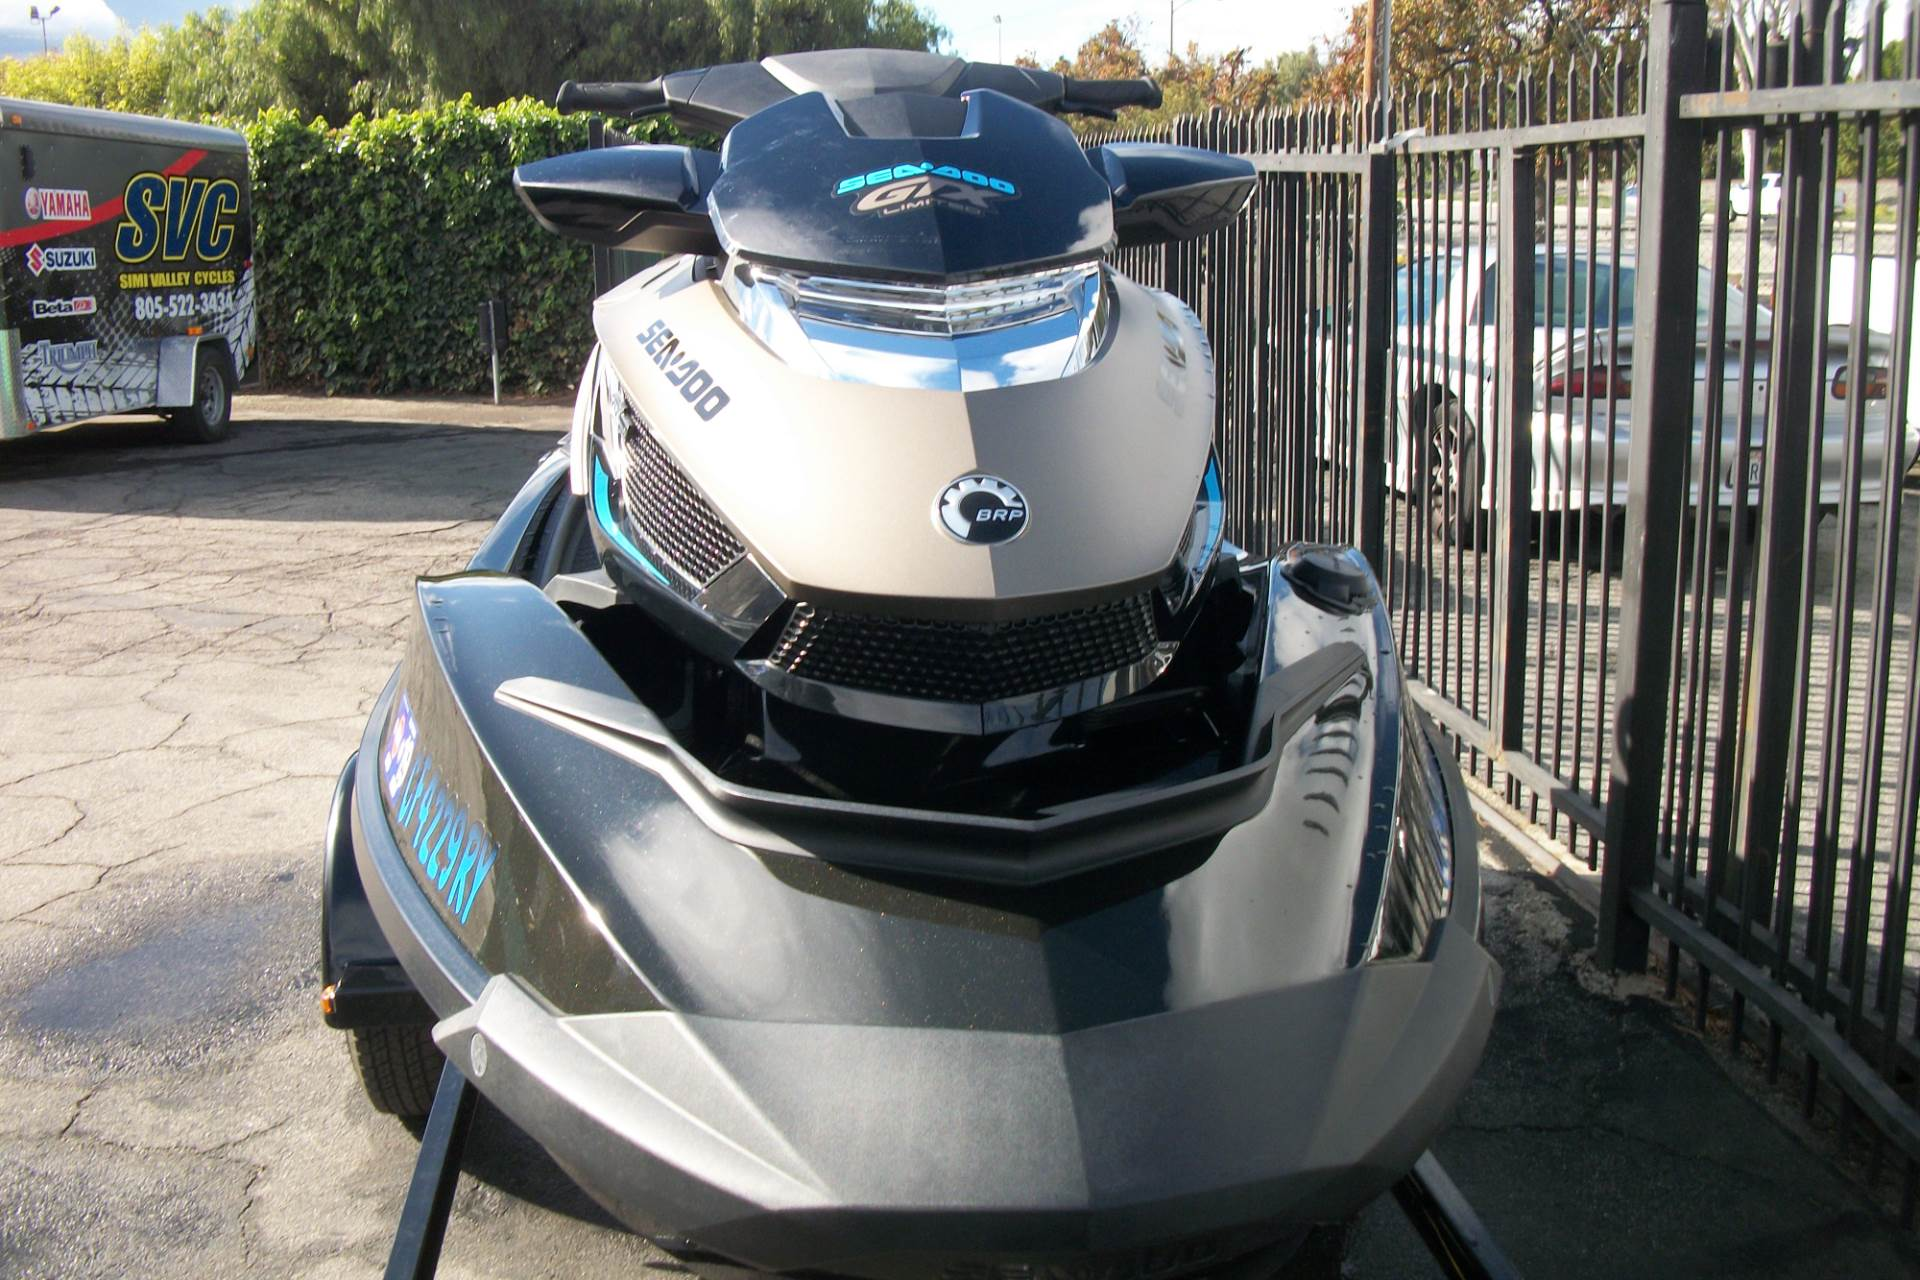 2017 Sea-Doo GTX Limited S 260 in Simi Valley, California